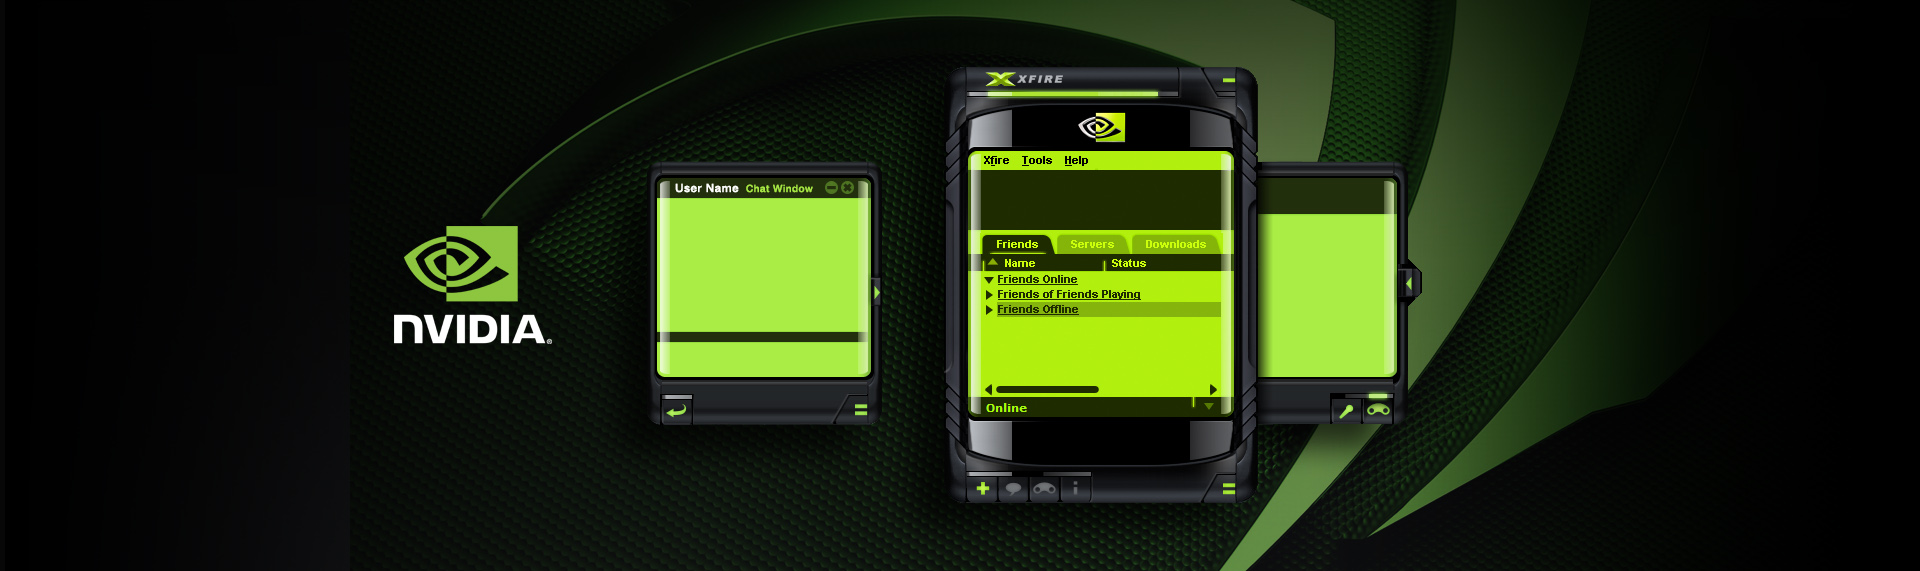 NVIDIA Reactor for Xfire  Desktop Application UX & UI Design  NVIDIA & The Skins Factory presented the NVIDIA REACTOR skin for the Xfire skinnable gaming chat system. Designed like a future-world communication device, NVIDIA REACTOR with its obsidian colored glass and jet black rubber trim brings to life a Blade Runner-esque style that gamers everywhere enjoyed. The skin was so successful, NVIDIA then contracted The Skins Factory to create a custom Windows Media Player skin that shared the same design language - one of our most popular WMP skins ever.